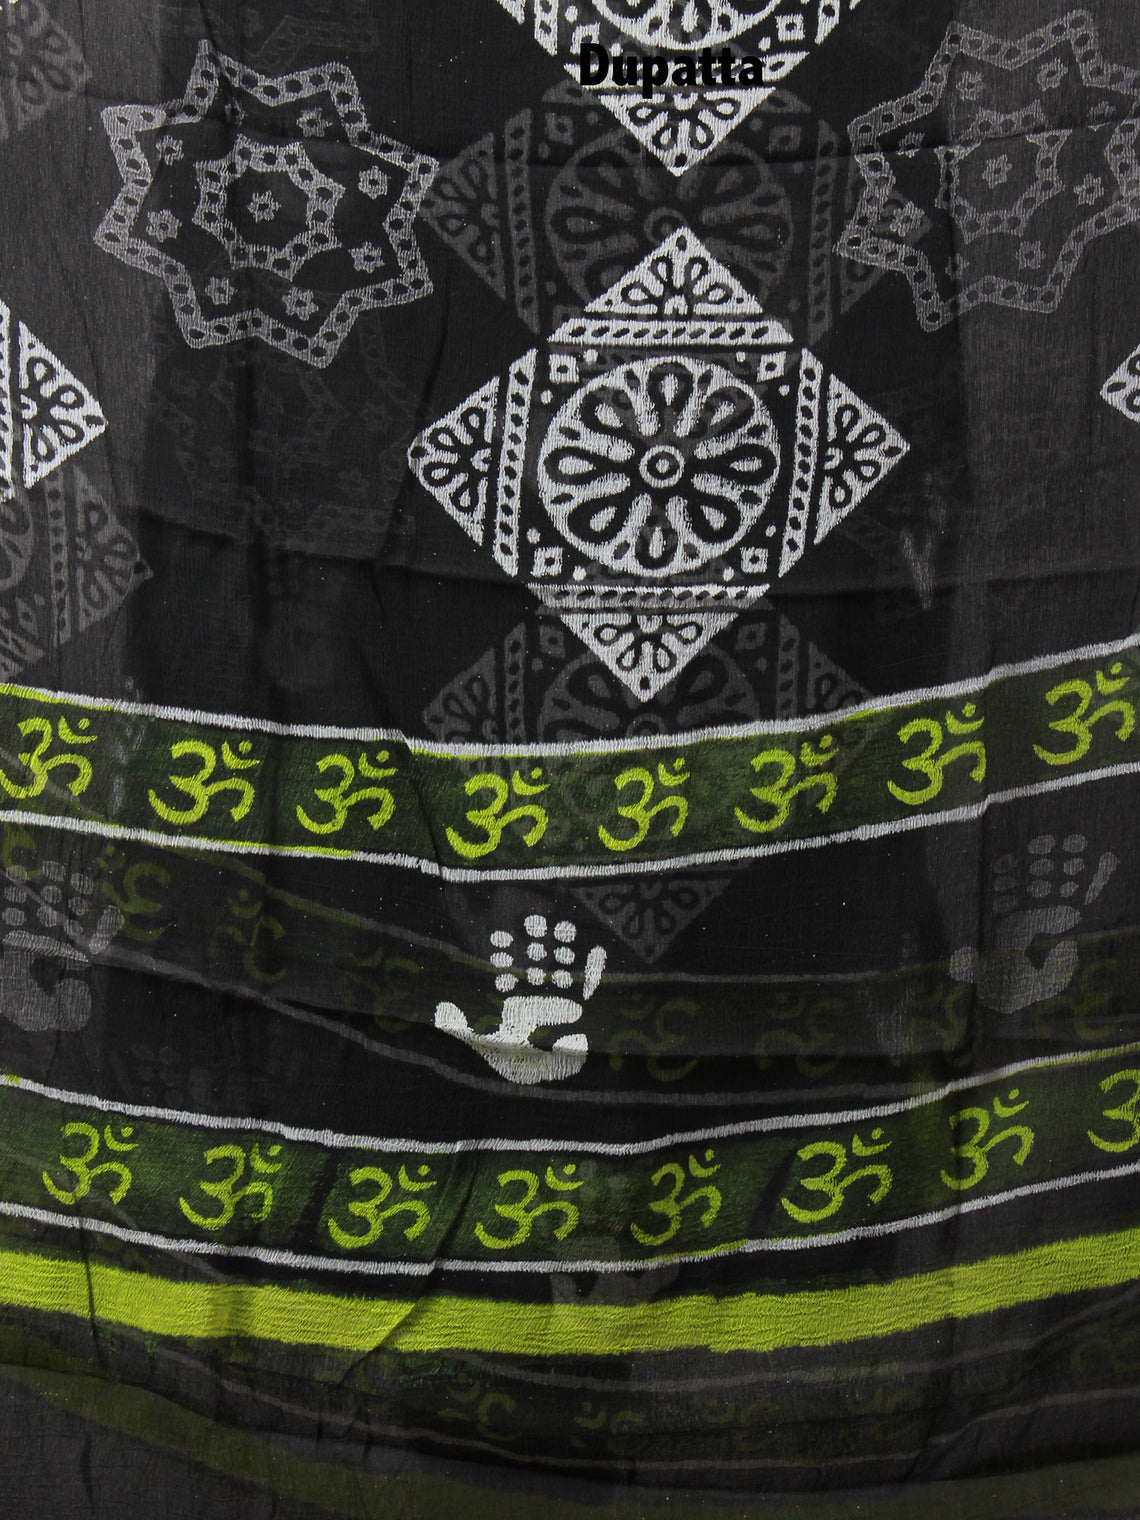 Black White Hand Block Printed Cotton Suit-Salwar Fabric With Chiffon Dupatta - S1628122